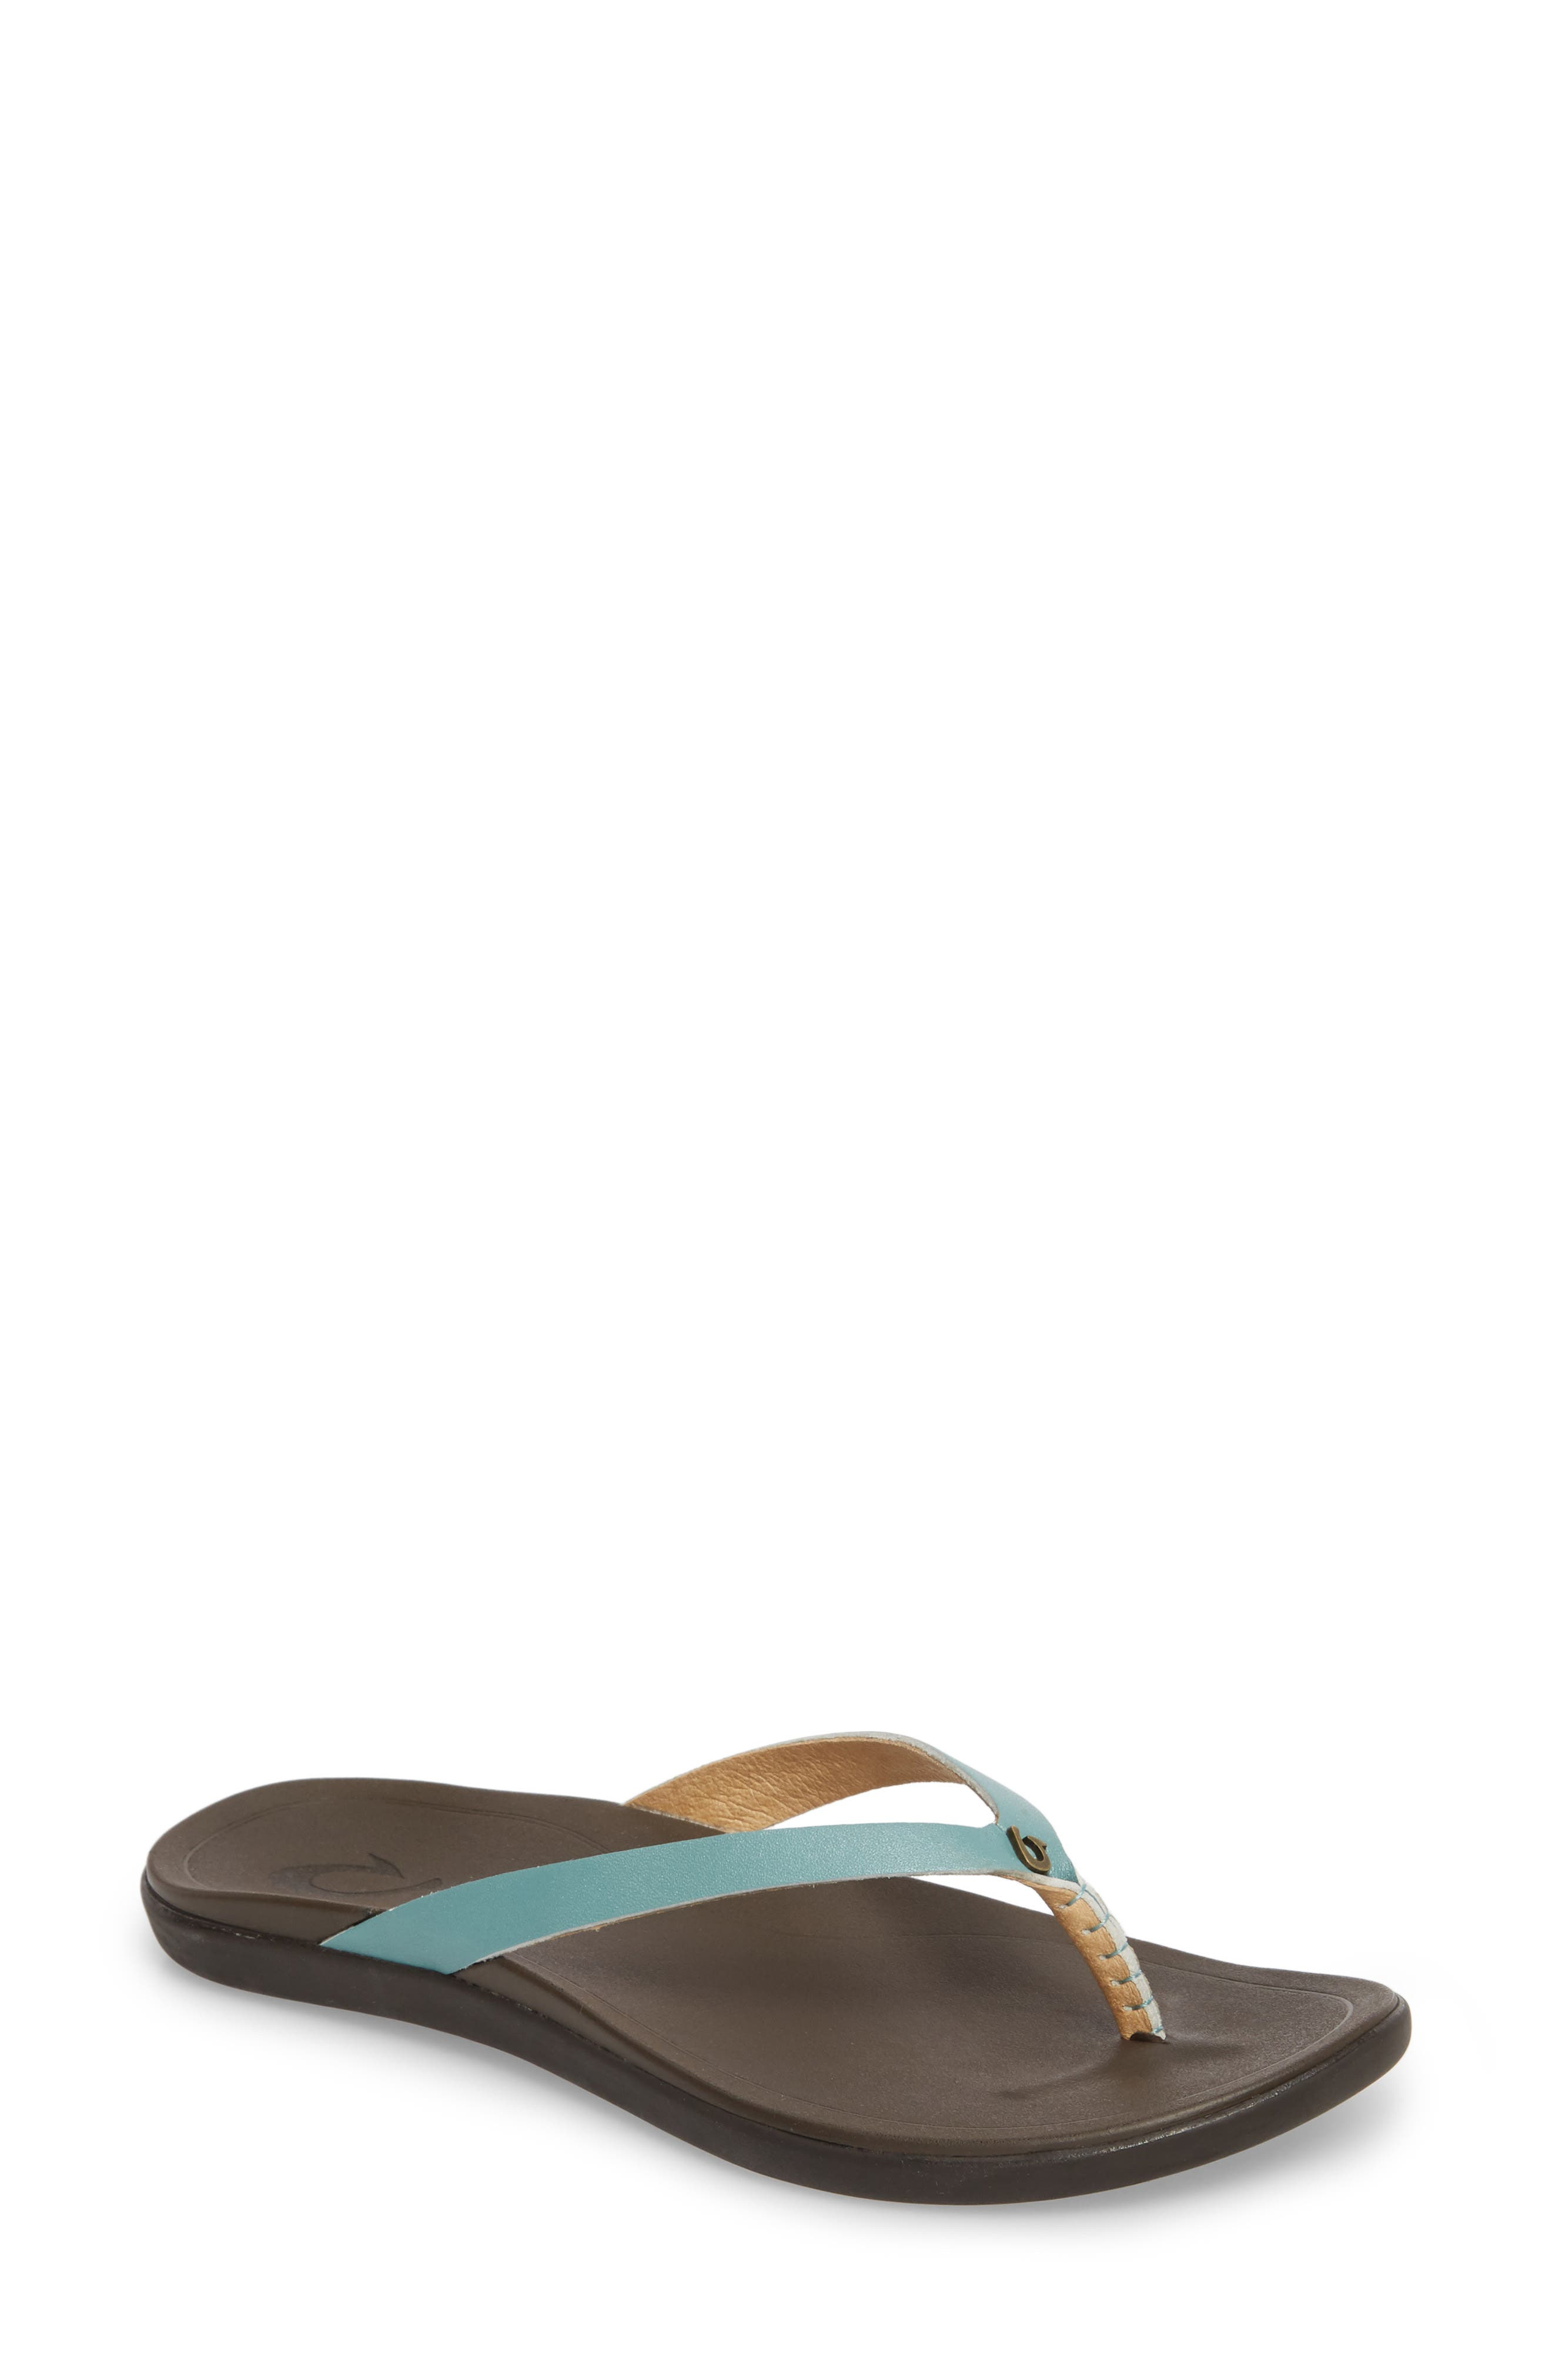 'Ho Opio' Leather Flip Flop,                         Main,                         color, MINERAL BLUE/ DARK JAVA